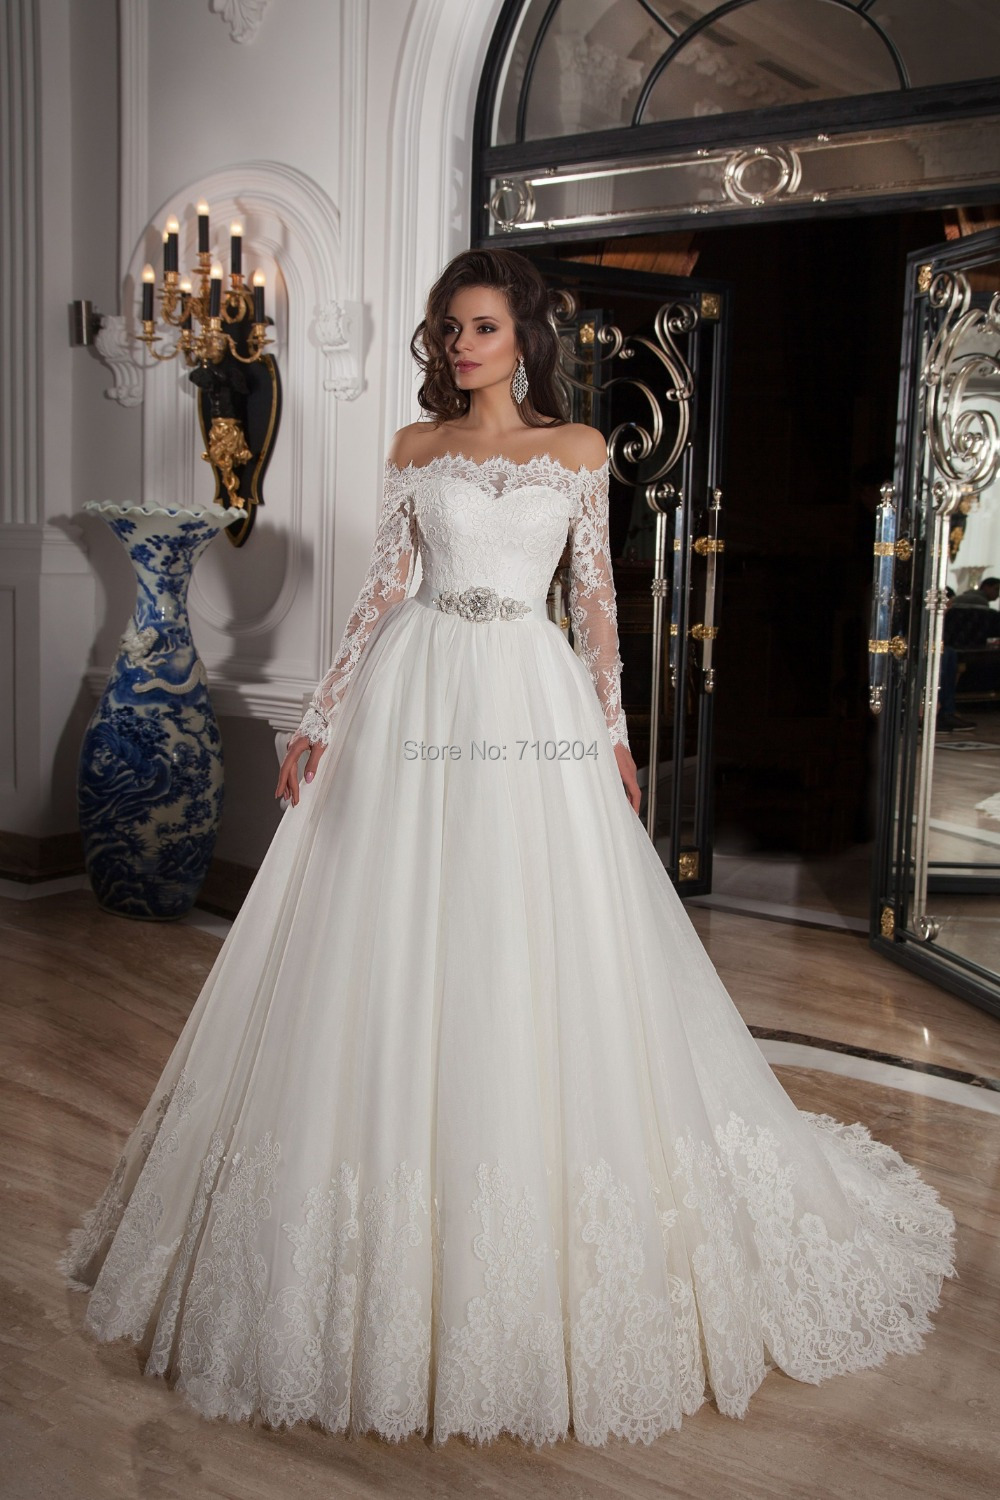 Wedding Dresses With Sleeves And Lace White | Super Wallpapers